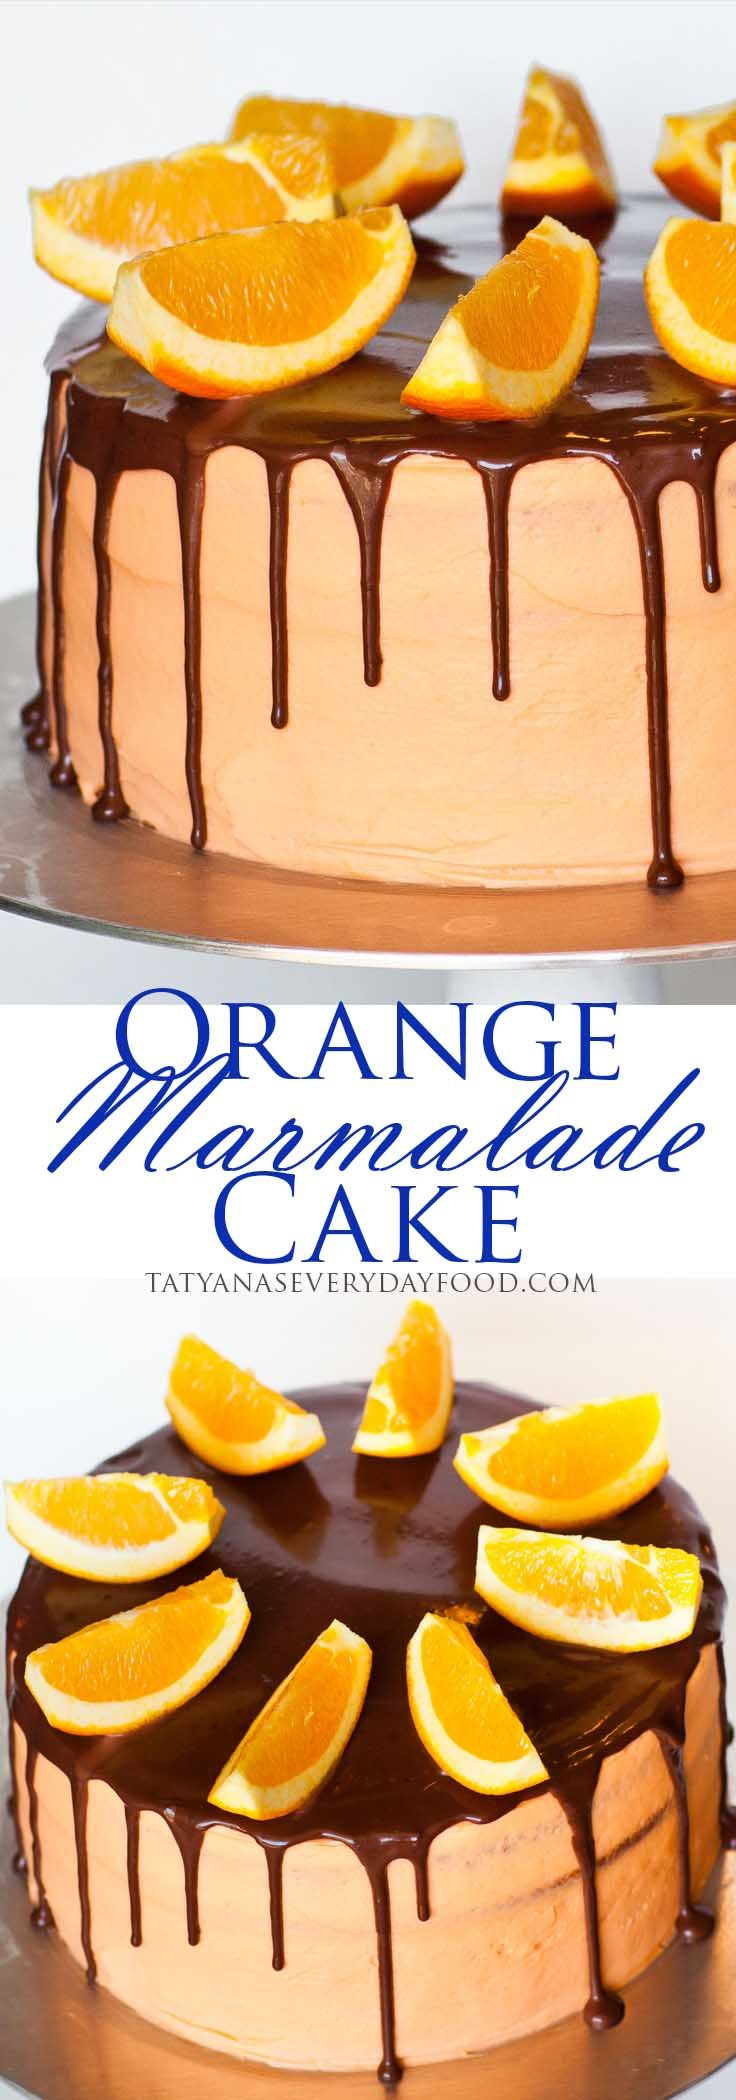 Delicate and moist white cake layers are flavored with orange liquor, filled with orange marmalade and frosted with orange-flavored butter cream! And finished with a chocolate ganache for an elegant look! This orange marmalade cake is the ultimate treat for citrus lovers! The combination of the sweet cake and tangy marmalade is perfect! Watch my […]